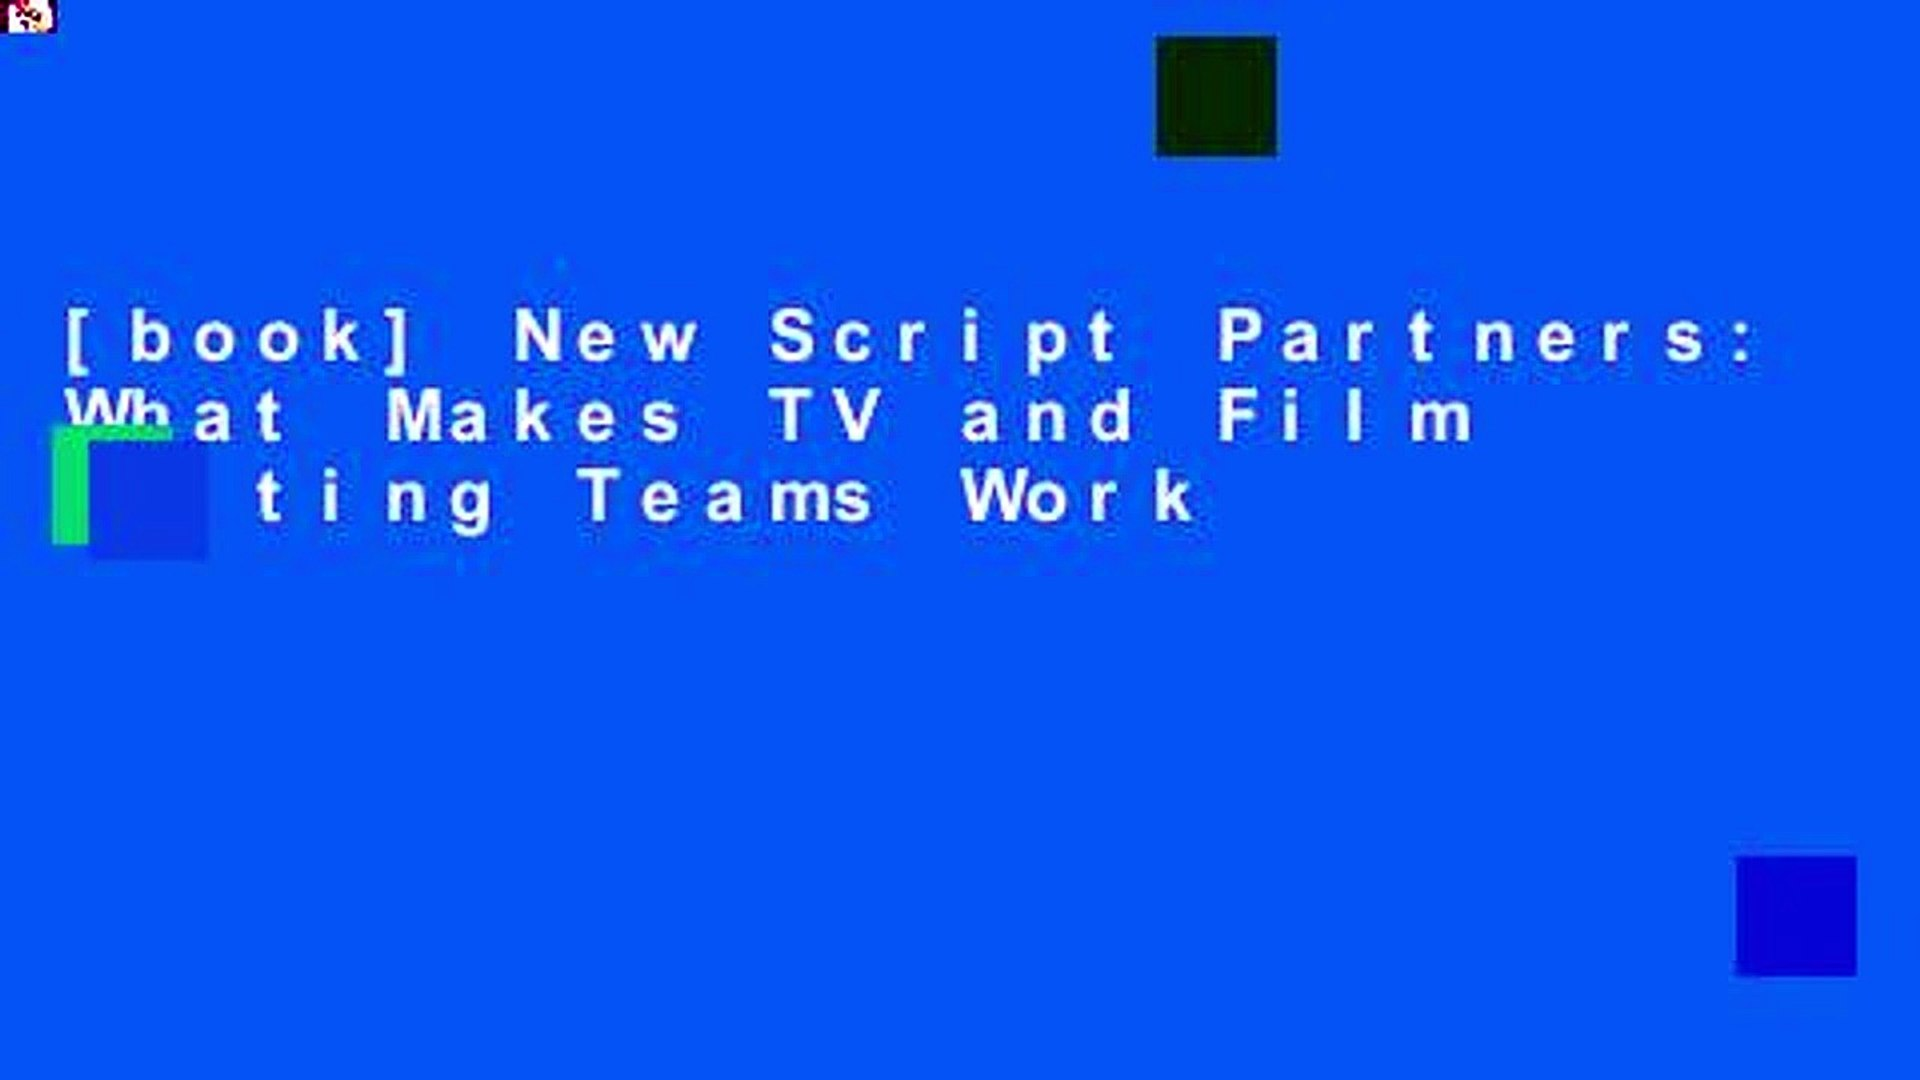 [book] New Script Partners: What Makes TV and Film Writing Teams Work